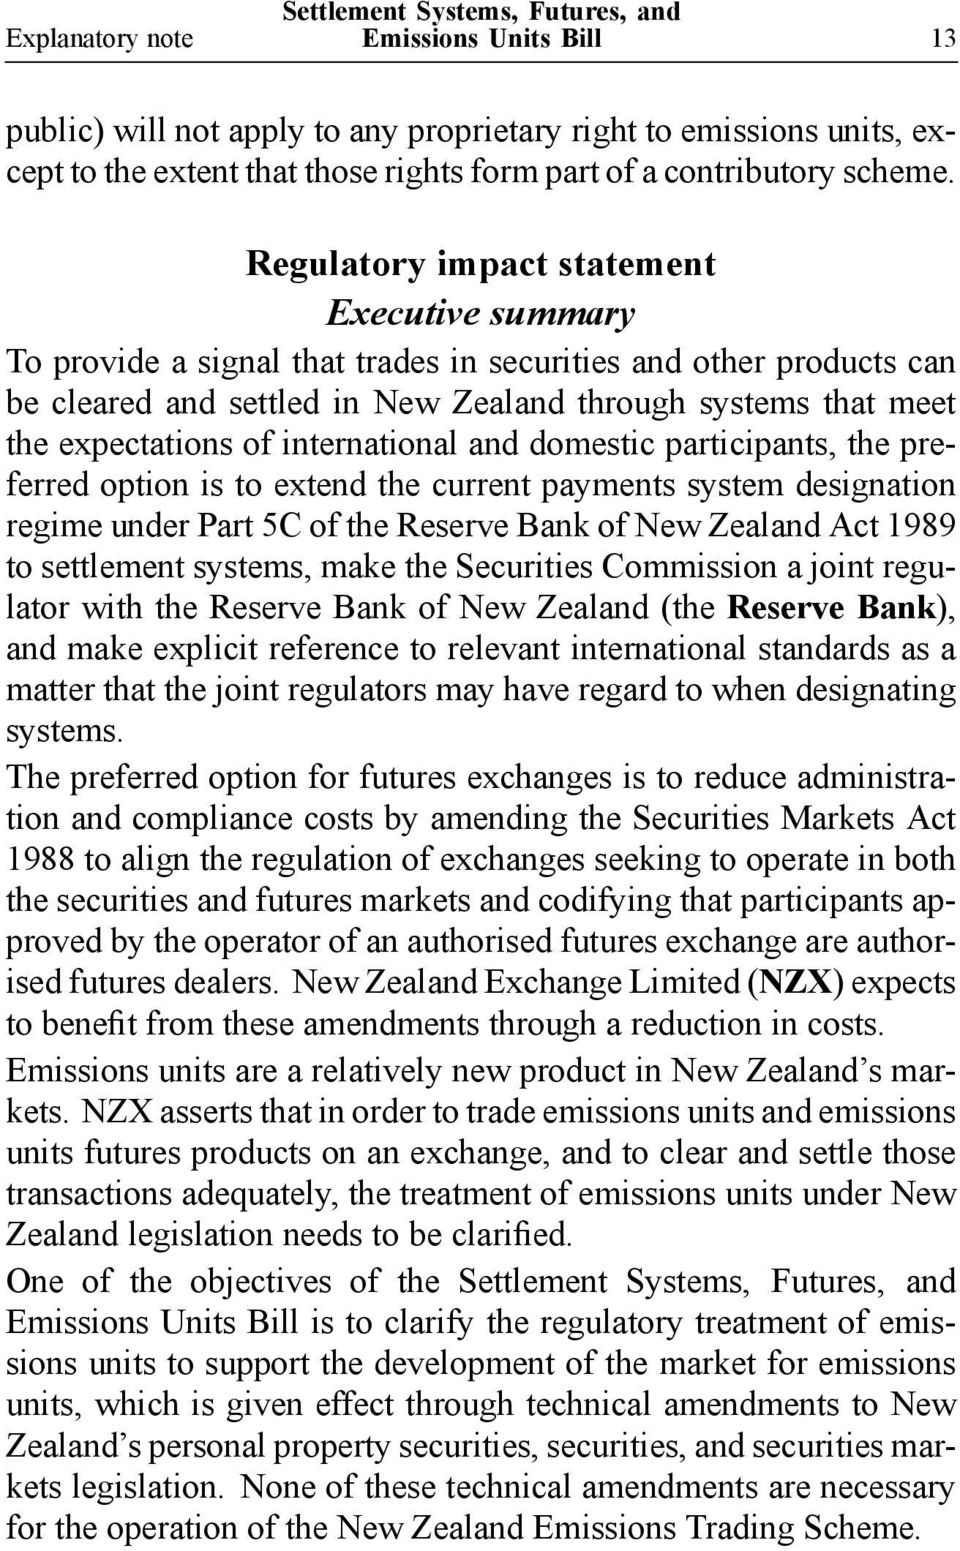 international and domestic participants, the preferred option is to extend the current payments system designation regime under Part 5C of the Reserve Bank of New Zealand Act 1989 to settlement